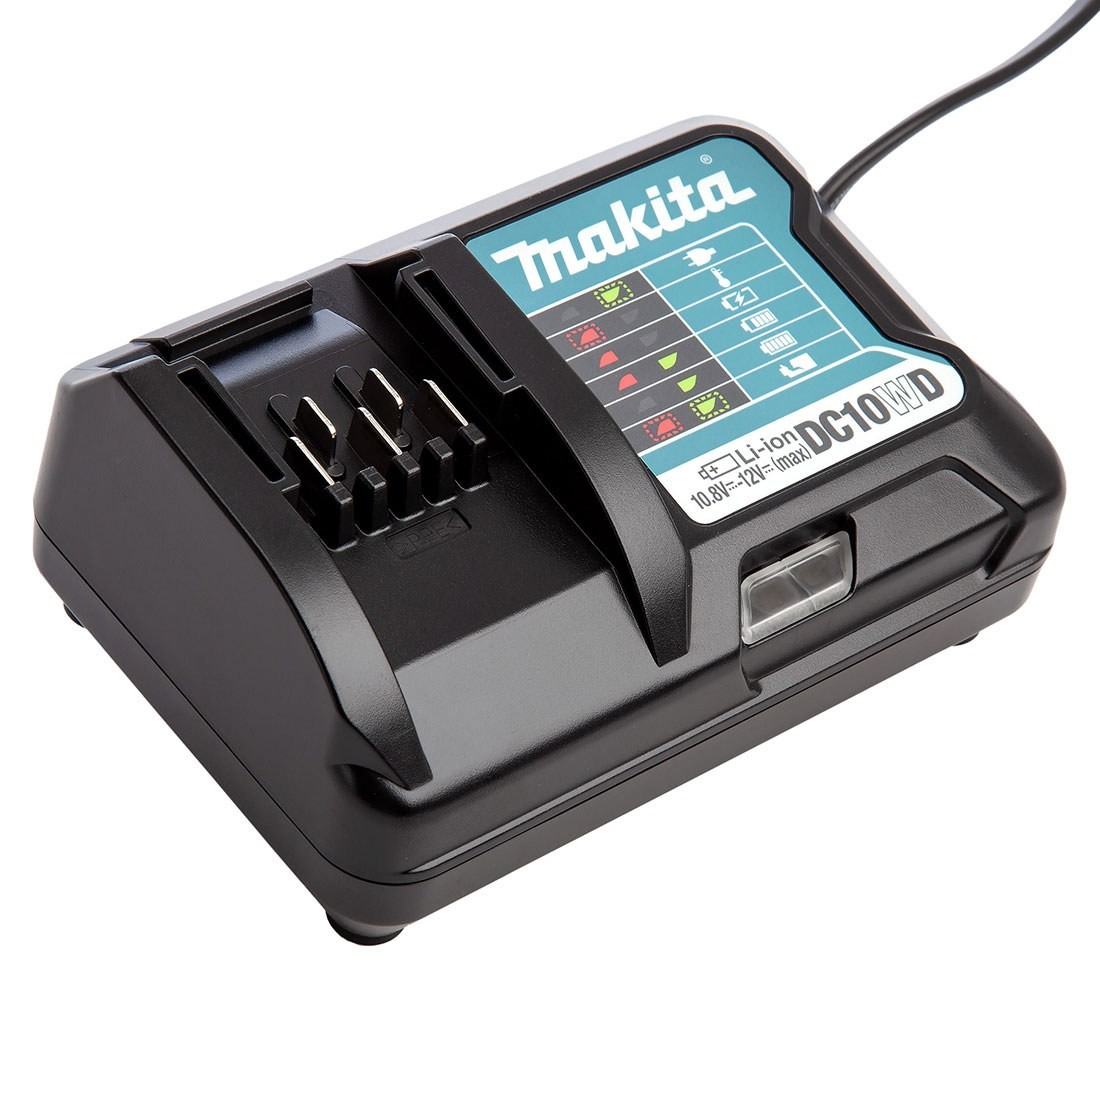 Makita DEAADP06 USB Port Battery Charger for 10.8v CXT Lithium Batteries